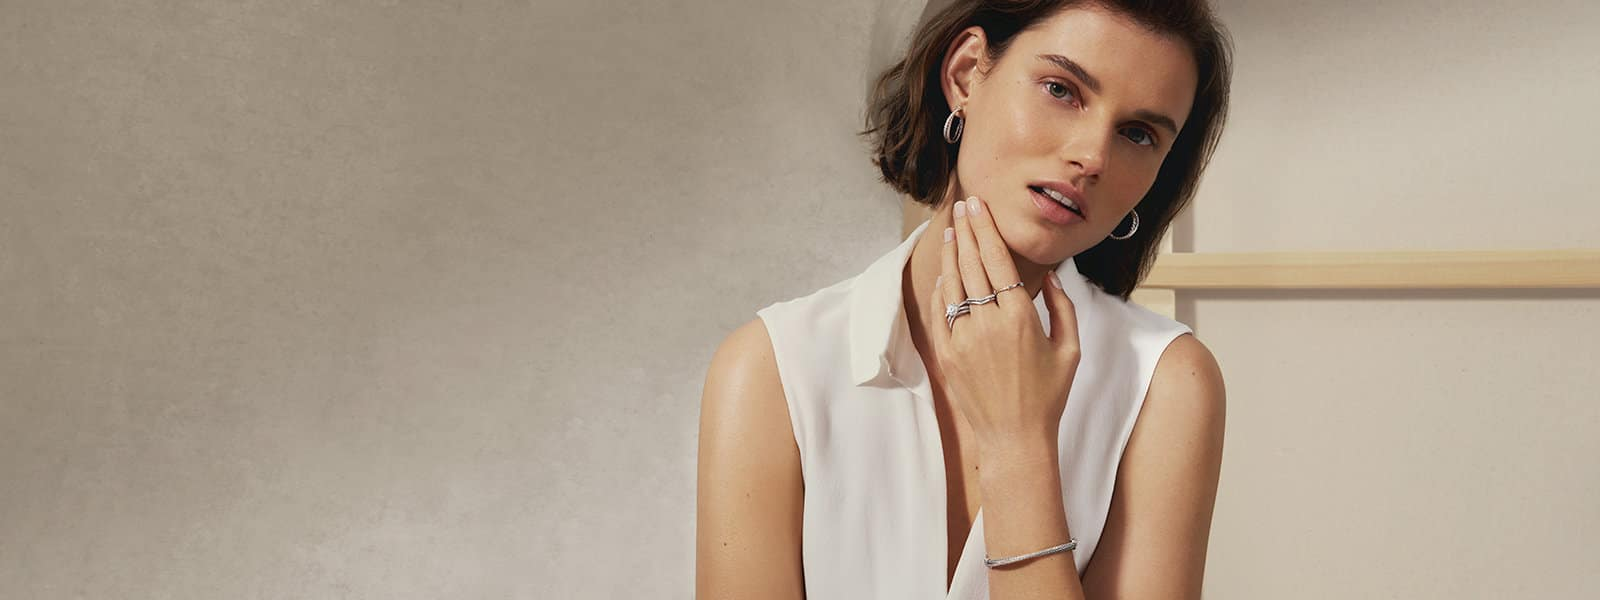 A model, wearing a white sleeveless blouse and David Yurman The Crossover Collection® and wedding designs in sterling silver or 18K white gold with white diamonds, standing in front of stone and wood surfaces.